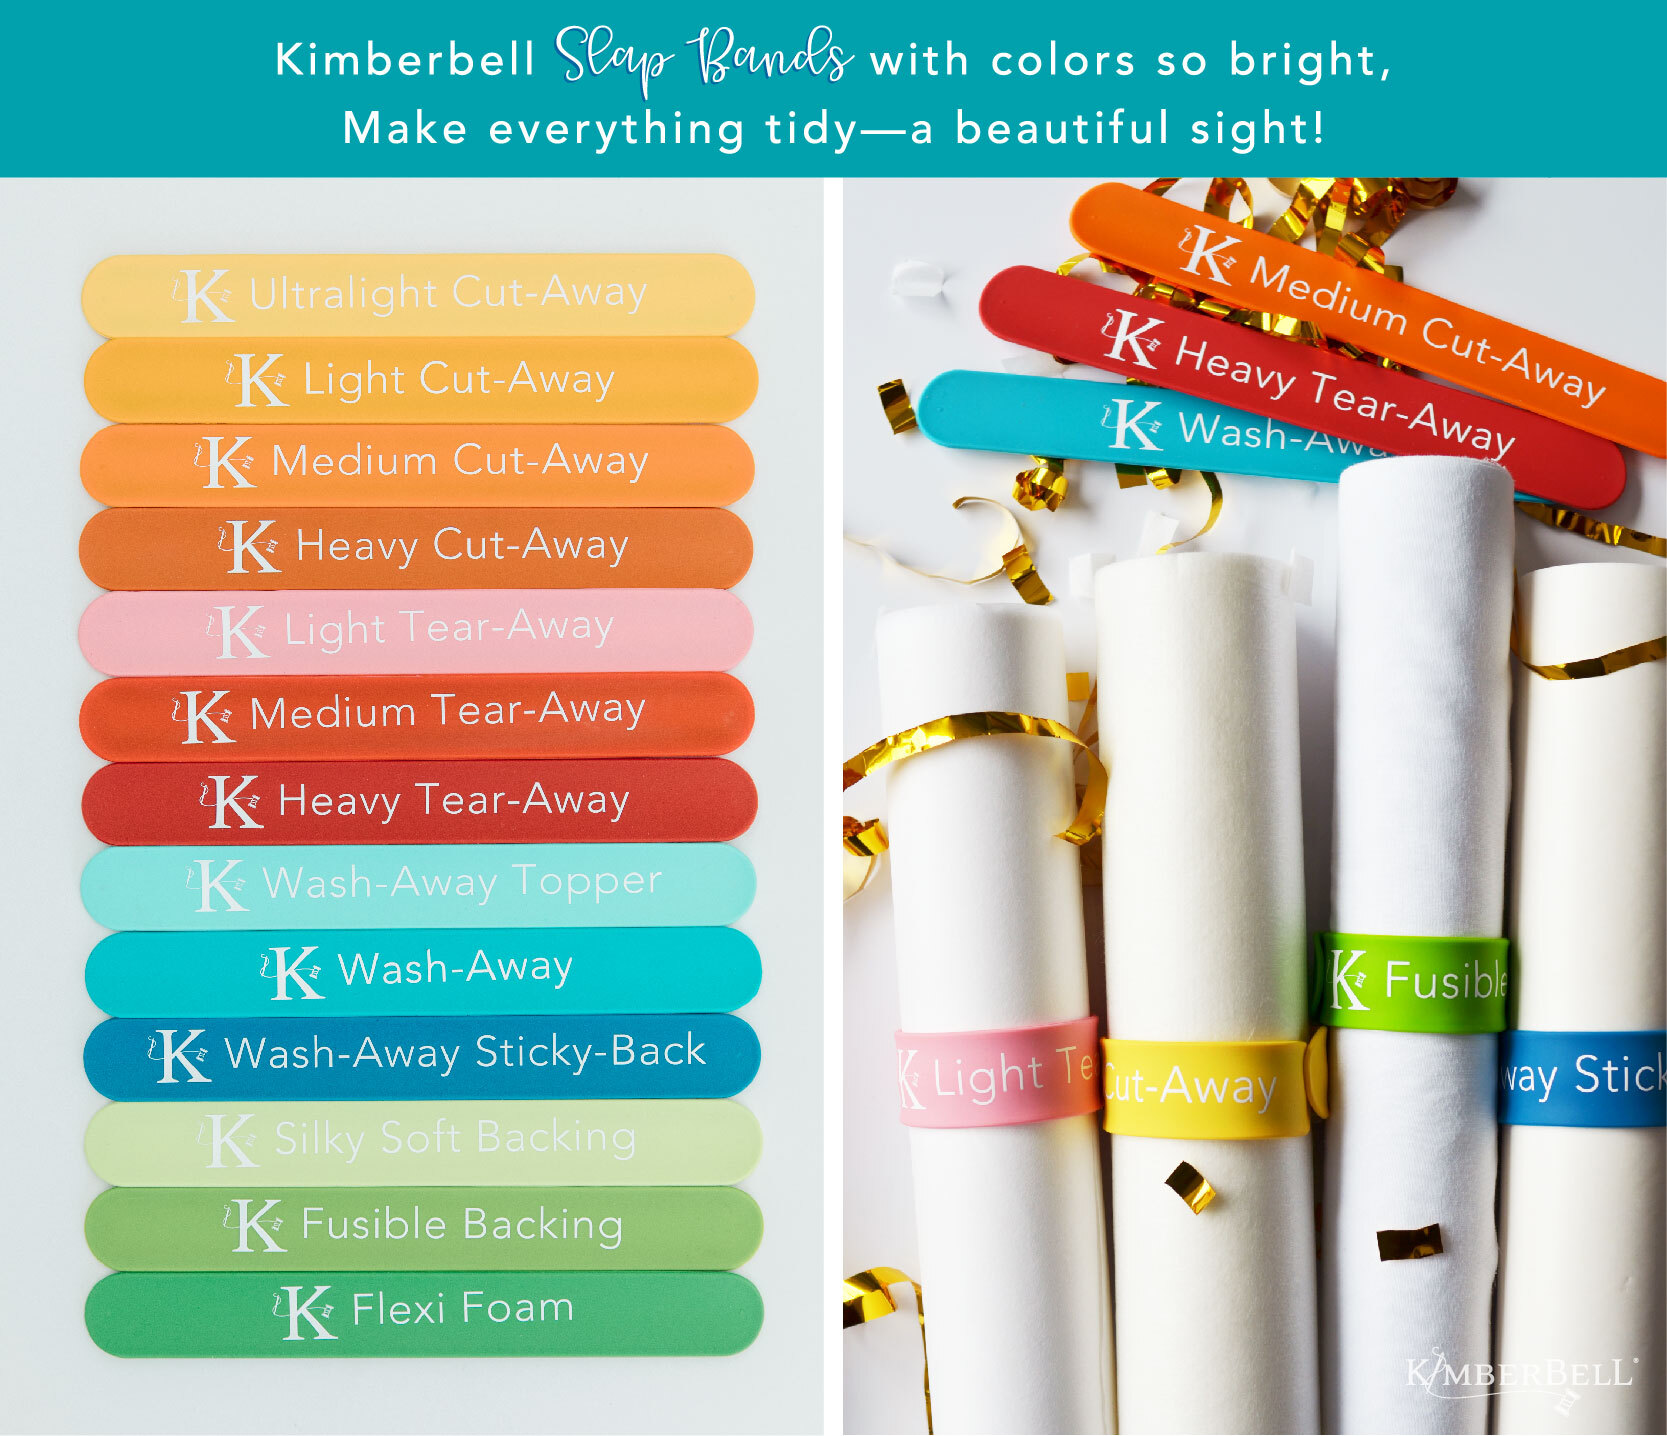 Kimberbell Stabilizer Slap Bands for machine embroidery stabilizer rolls